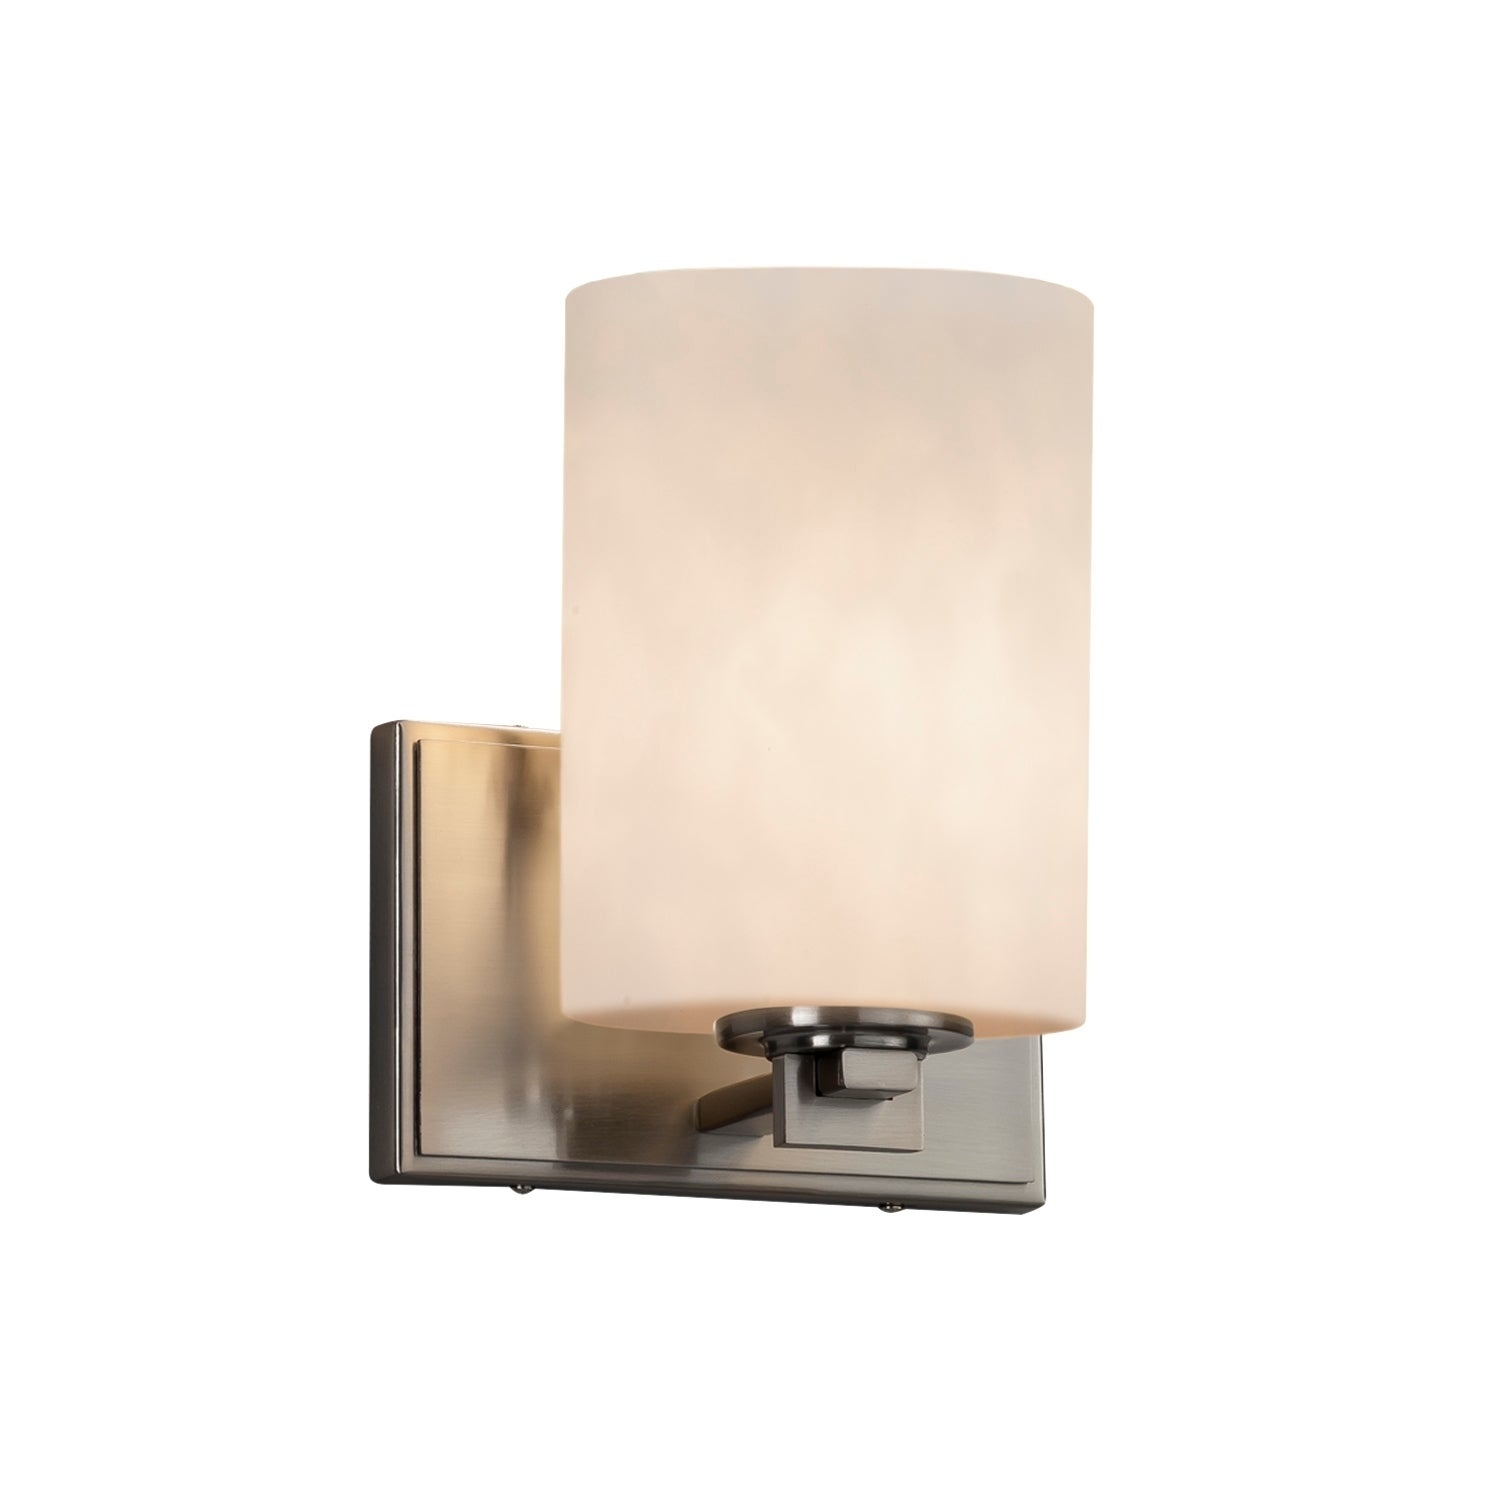 Justice design group clouds era 1 light brushed nickel wall sconce clouds cylinder flat rim shade